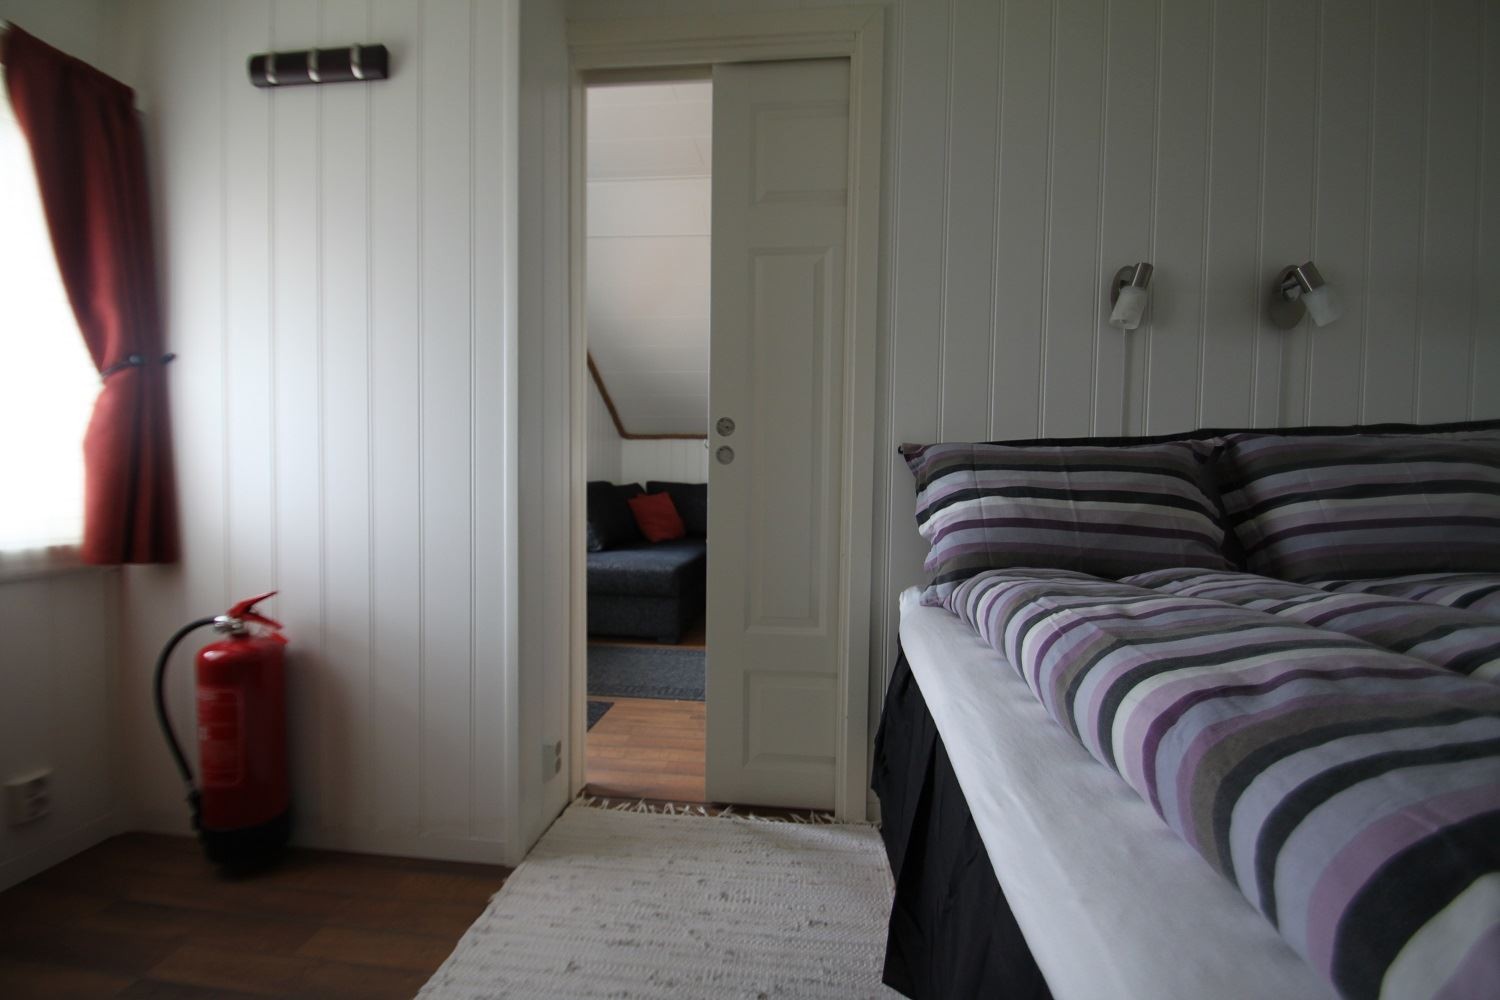 © Husjord Apartment, Wohnung in den Stø, Husjord Apartment